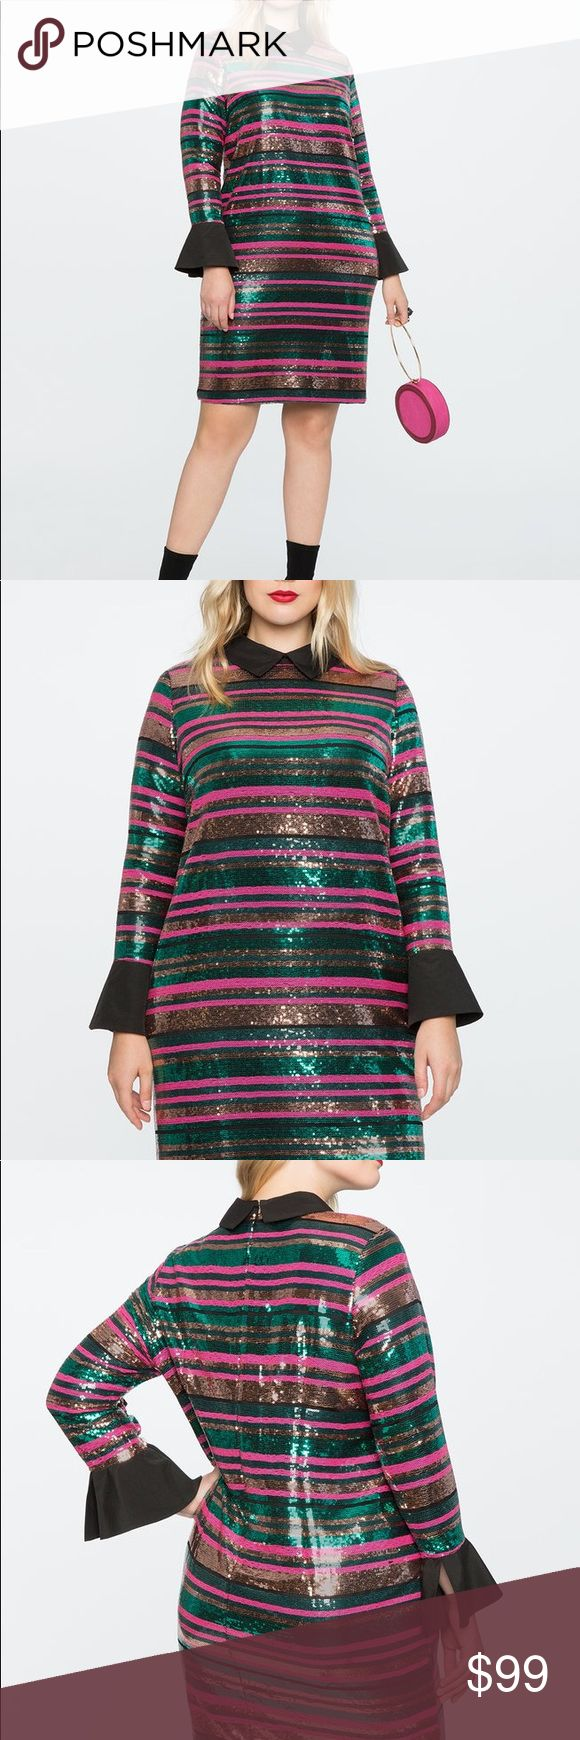 Eloquii sequined dress Eloquii striped sequin dress is fully lined with an invisible back zipper. Dress is a non-stretch woven fabric and the length is 41 inches. This dress has only been tried on but never worn. Eloquii Dresses Midi